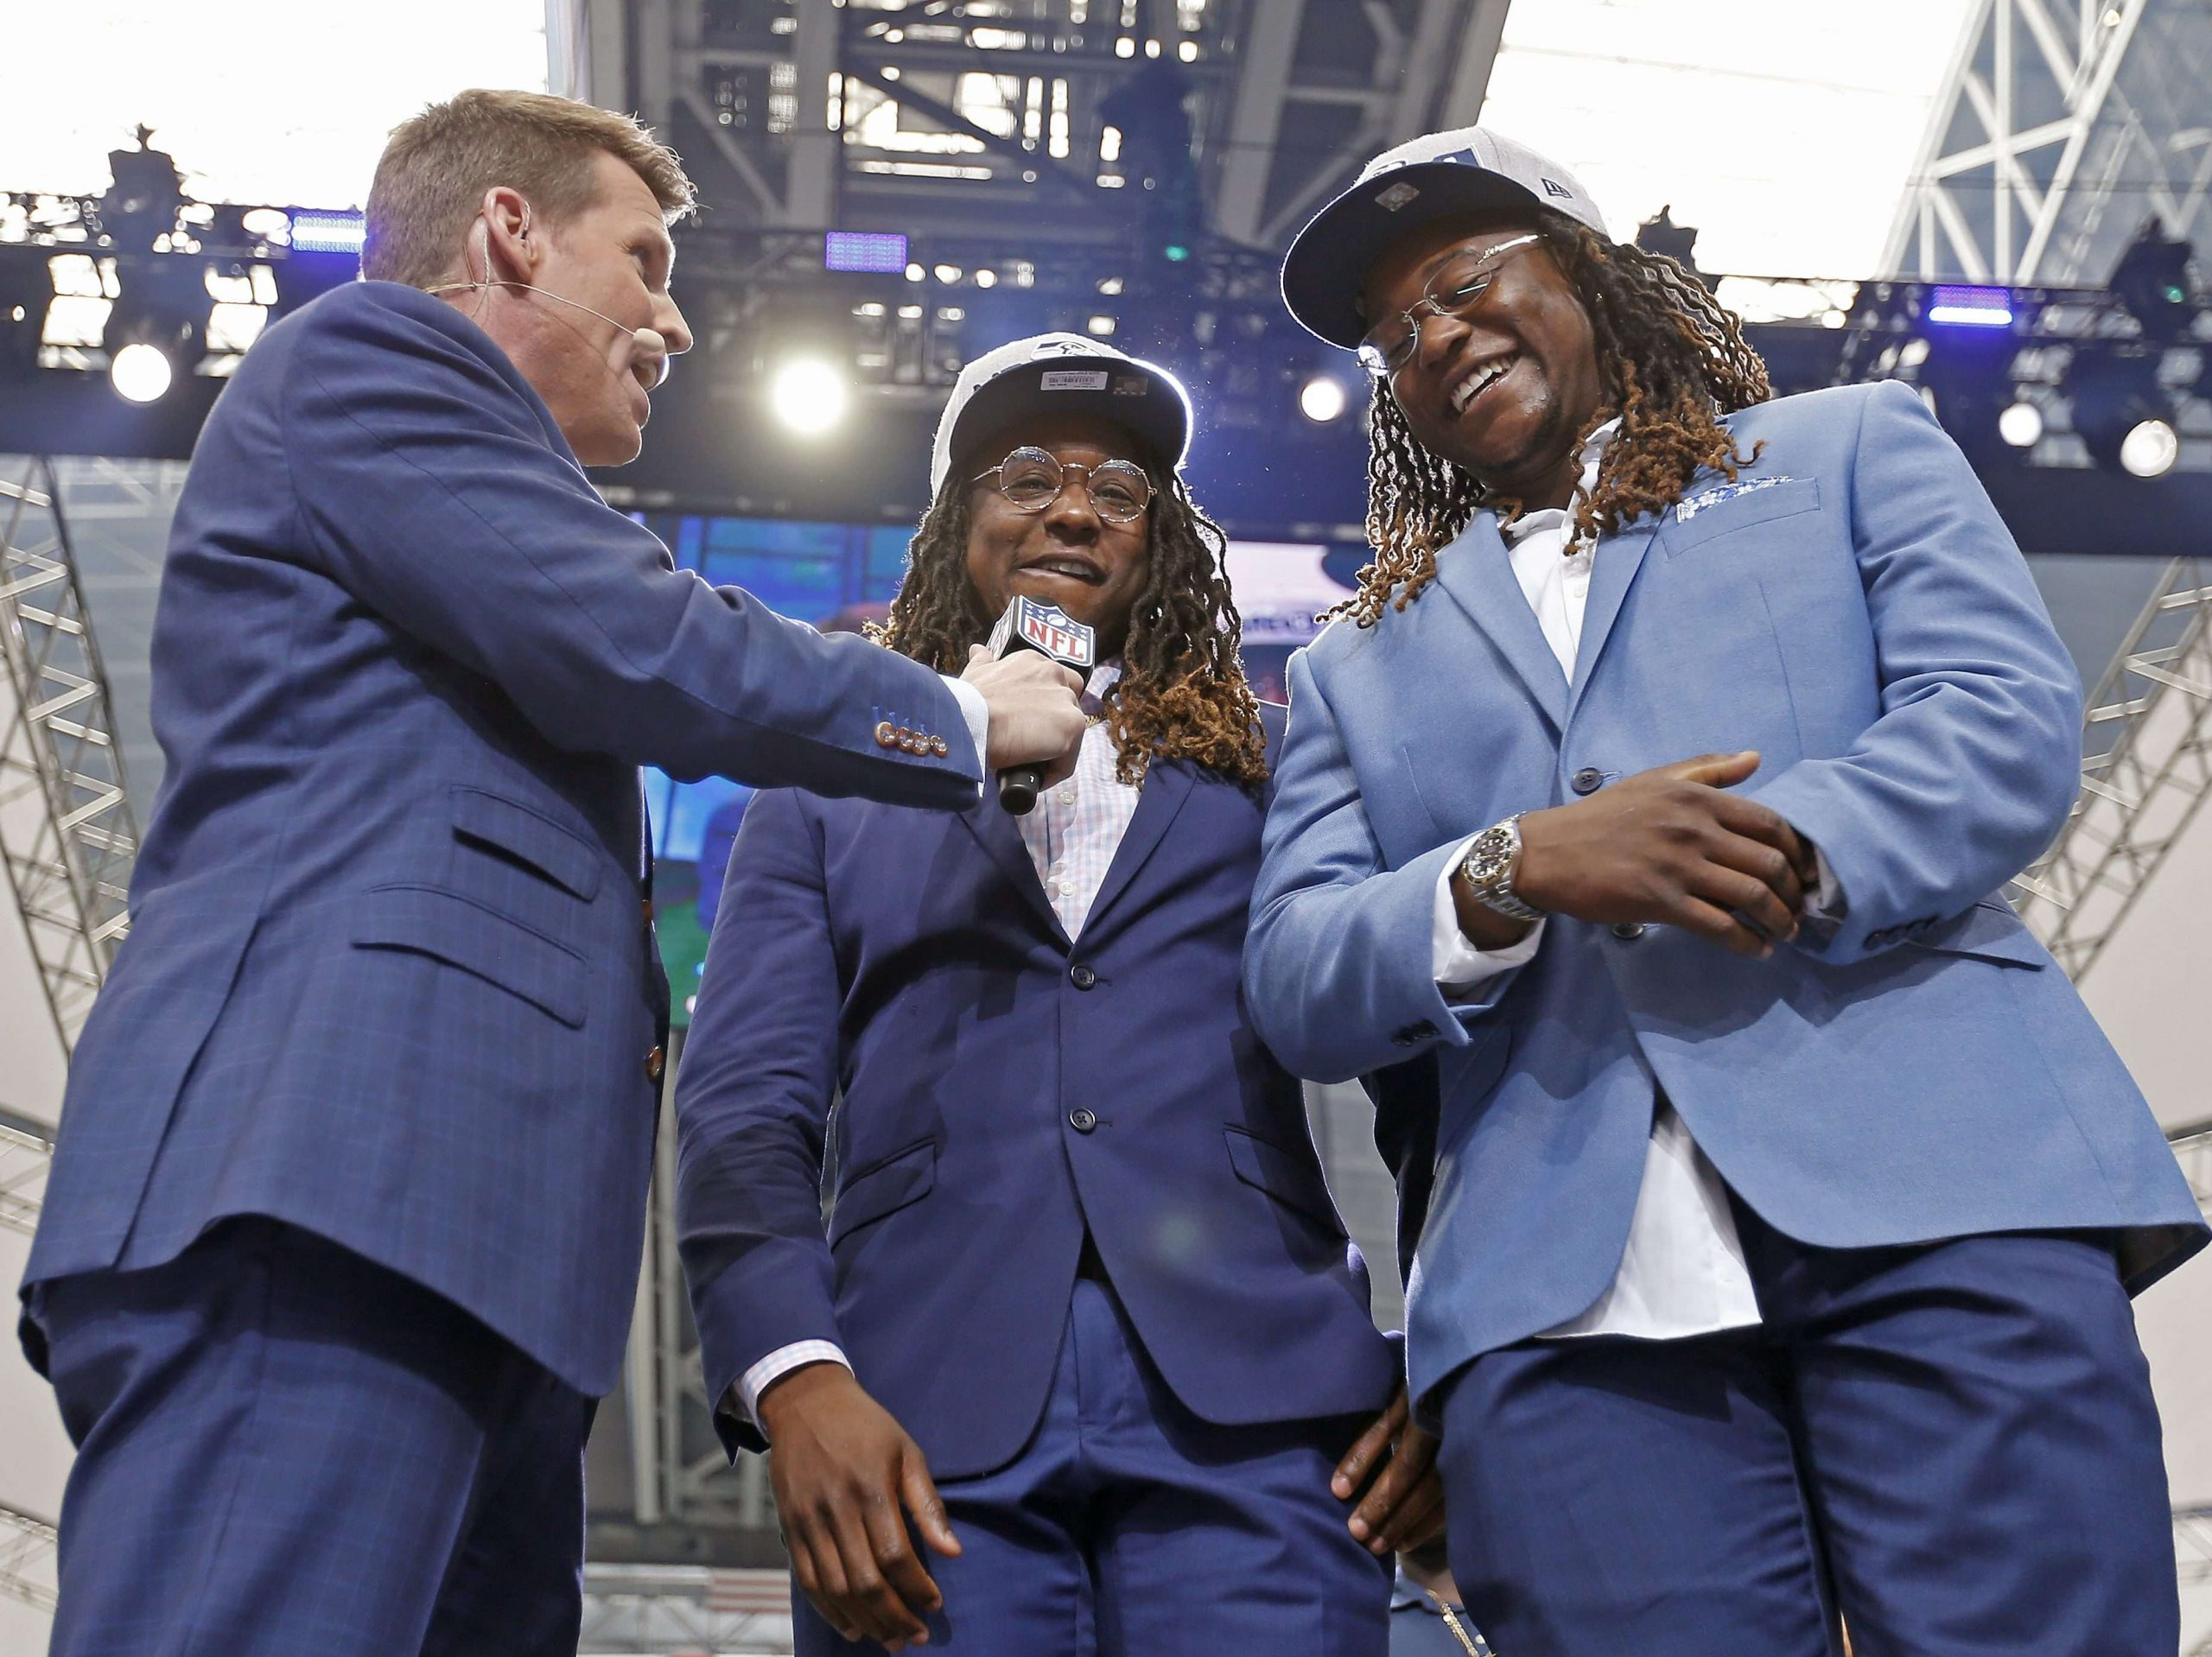 The NFL's feel-good draft story is emotional x2